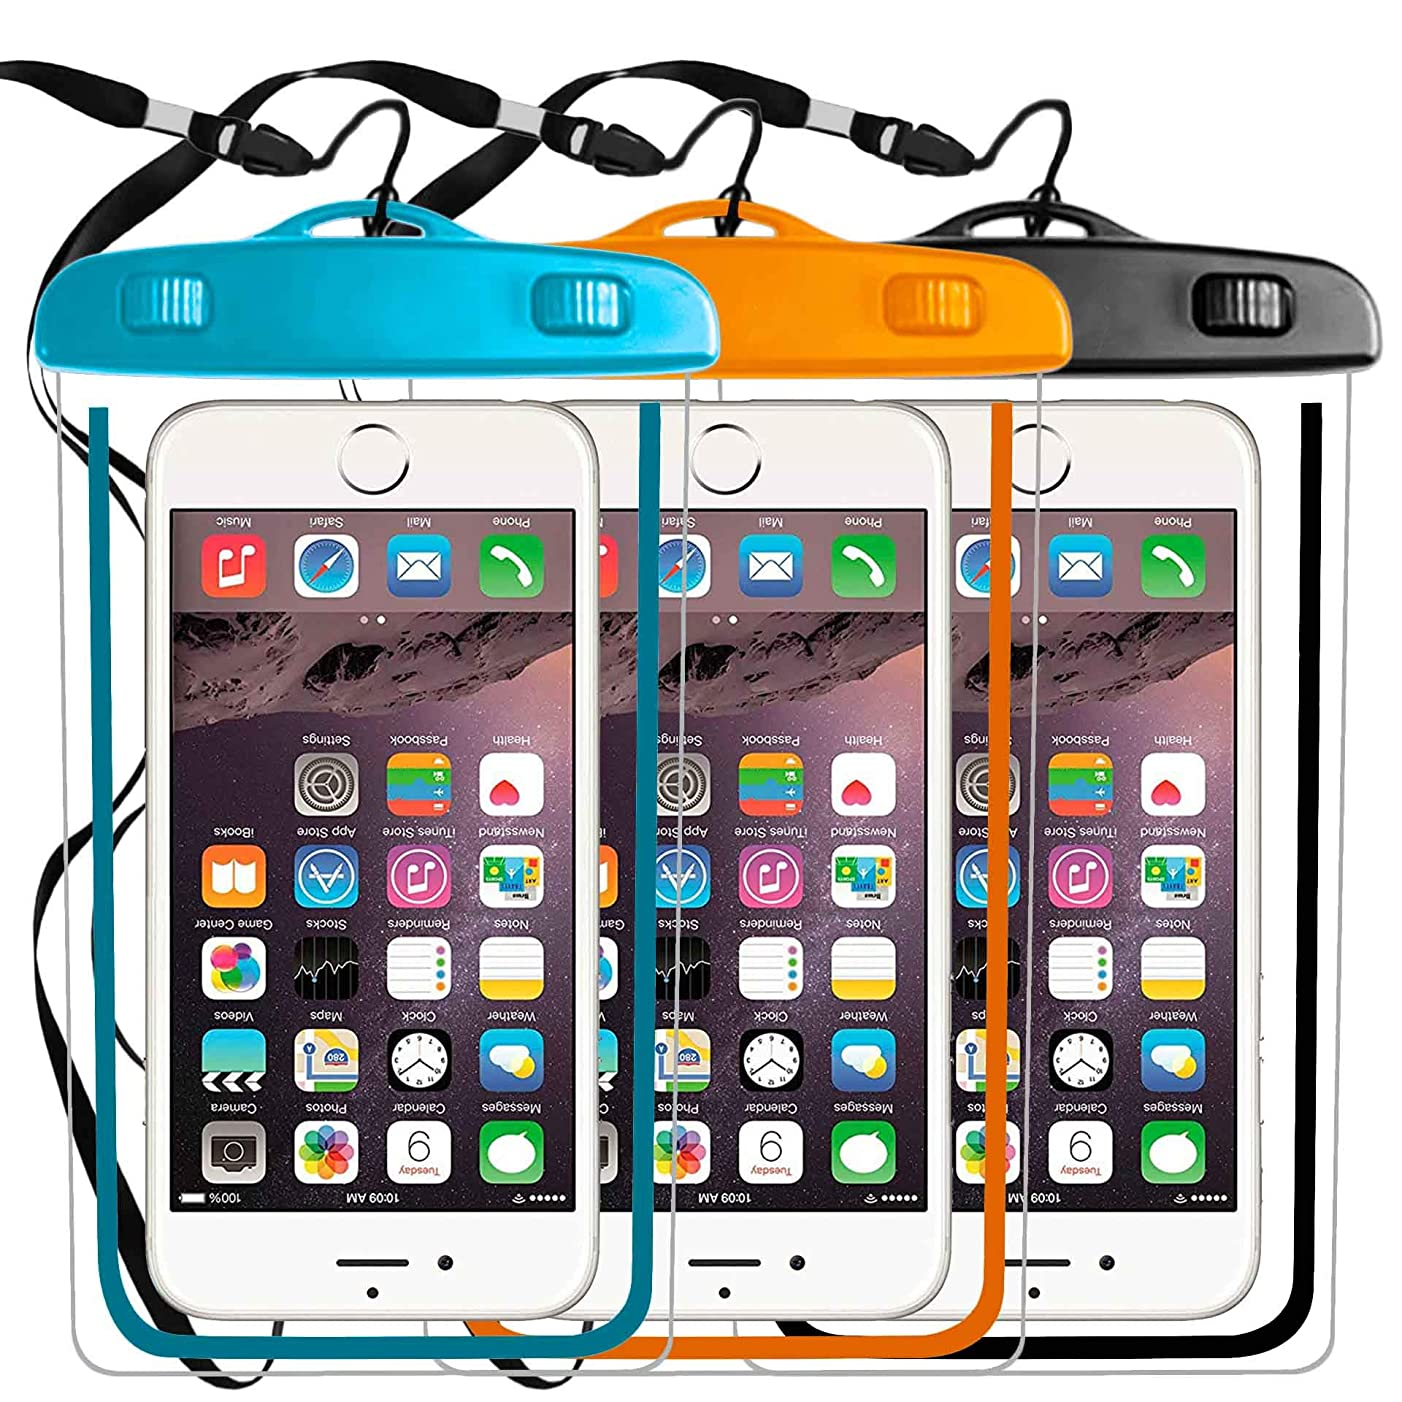 3 Pack Waterproof Phone Case, Universal Phone Pouch Dry Bag Compatible with Phone iPhone X XS MAX XR 8 7 6 Plus 6/6S Plus,6 6S SE,Galaxy s9 S8 S7 Edge Diagonal up 6